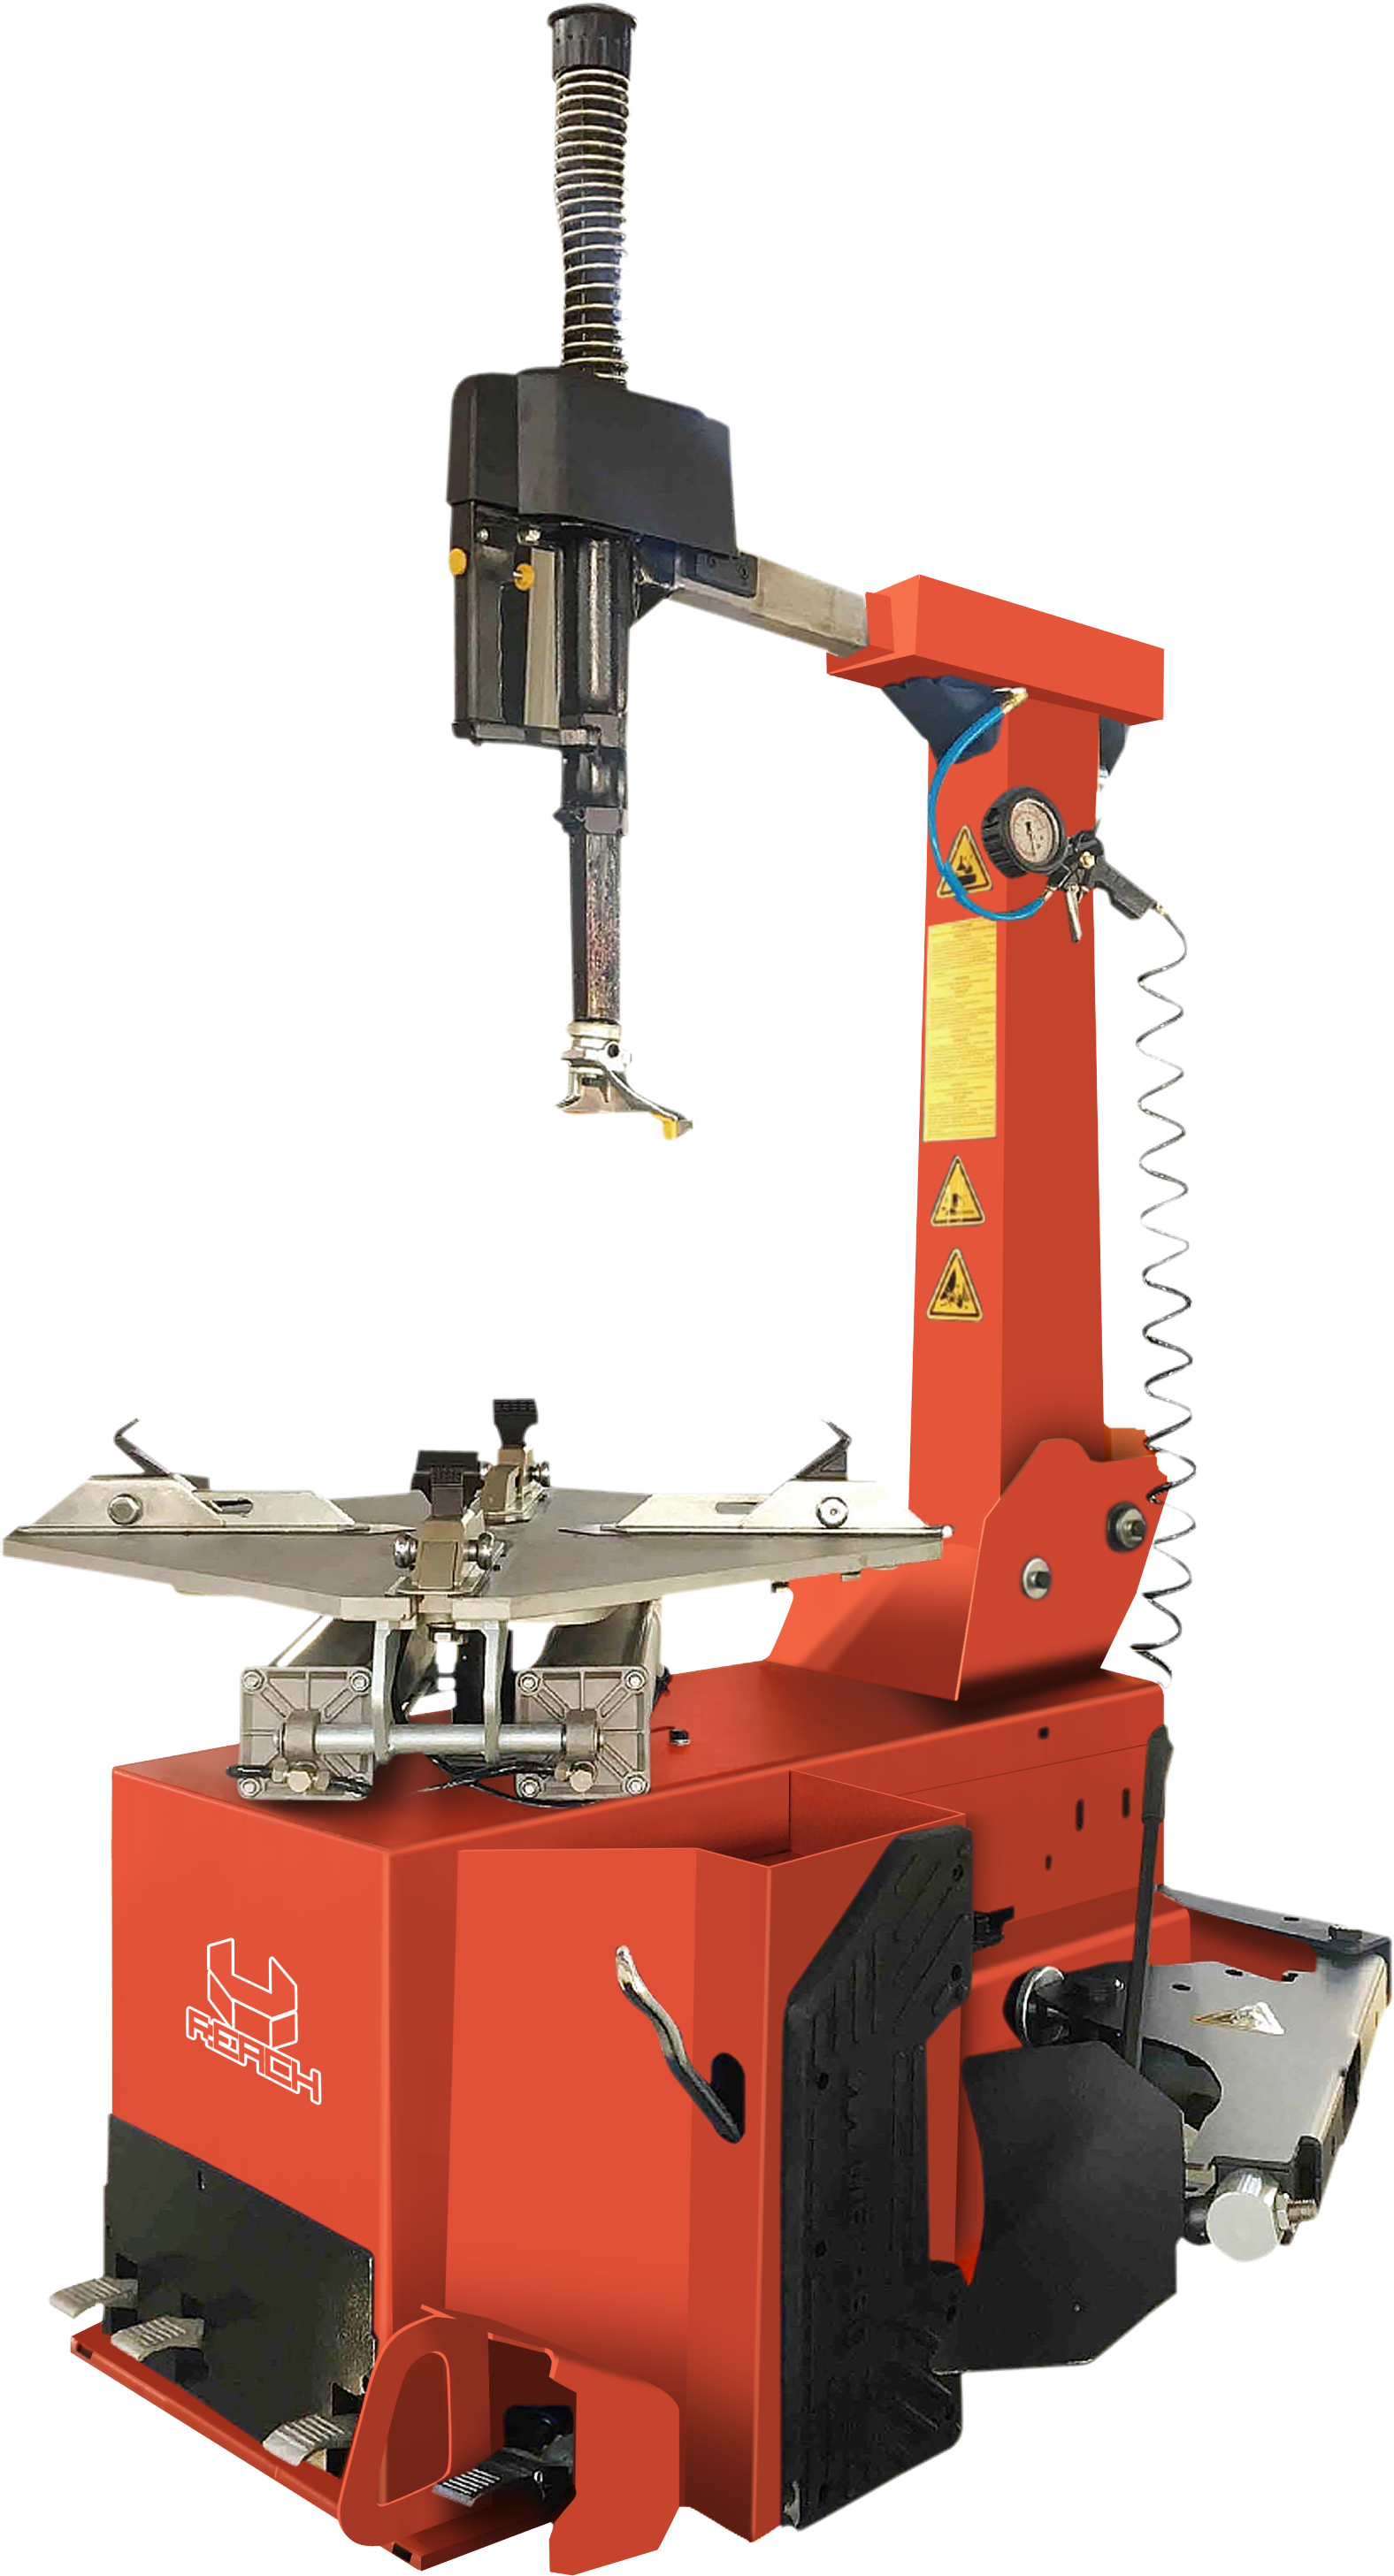 RH-880 Hot sale italy tech tyre repair machine car tire changer Featured Image